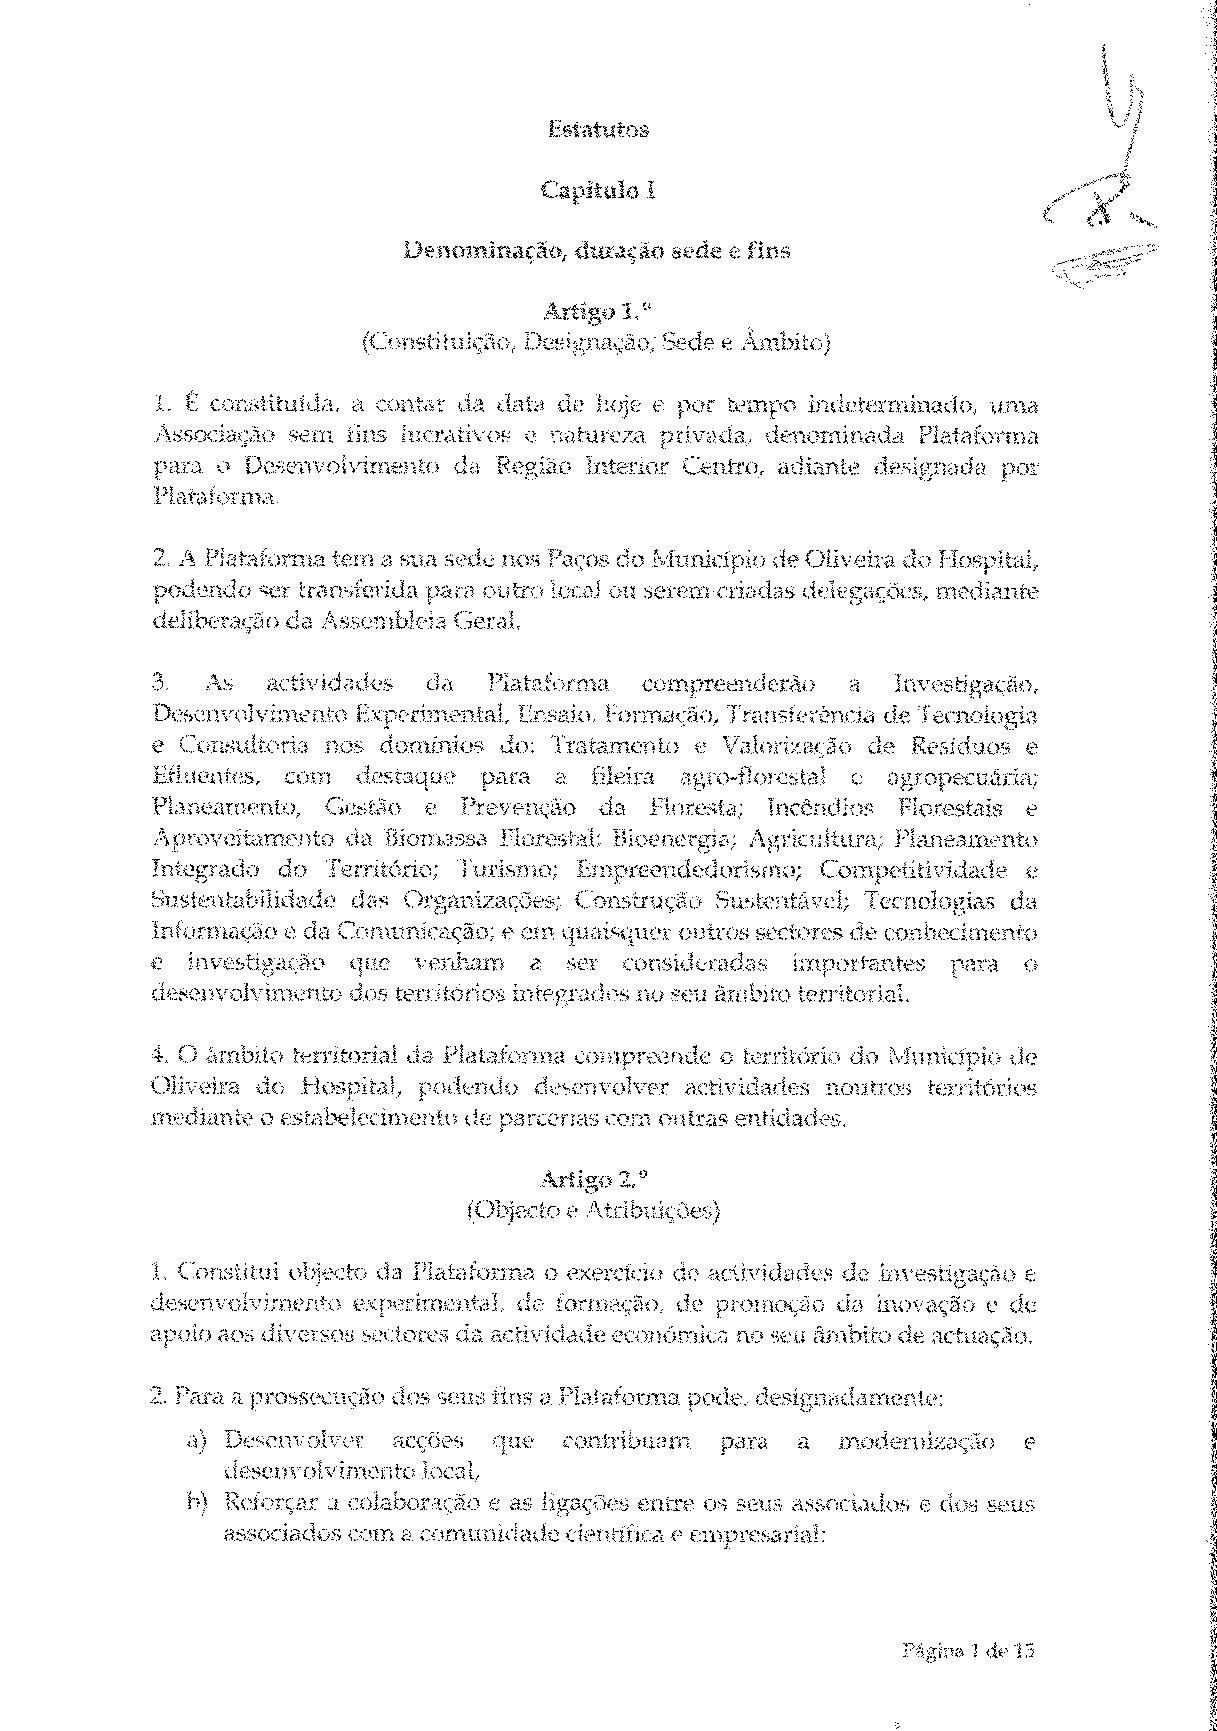 509402267_Associacao_BLC_rectificacao (5)-page-007